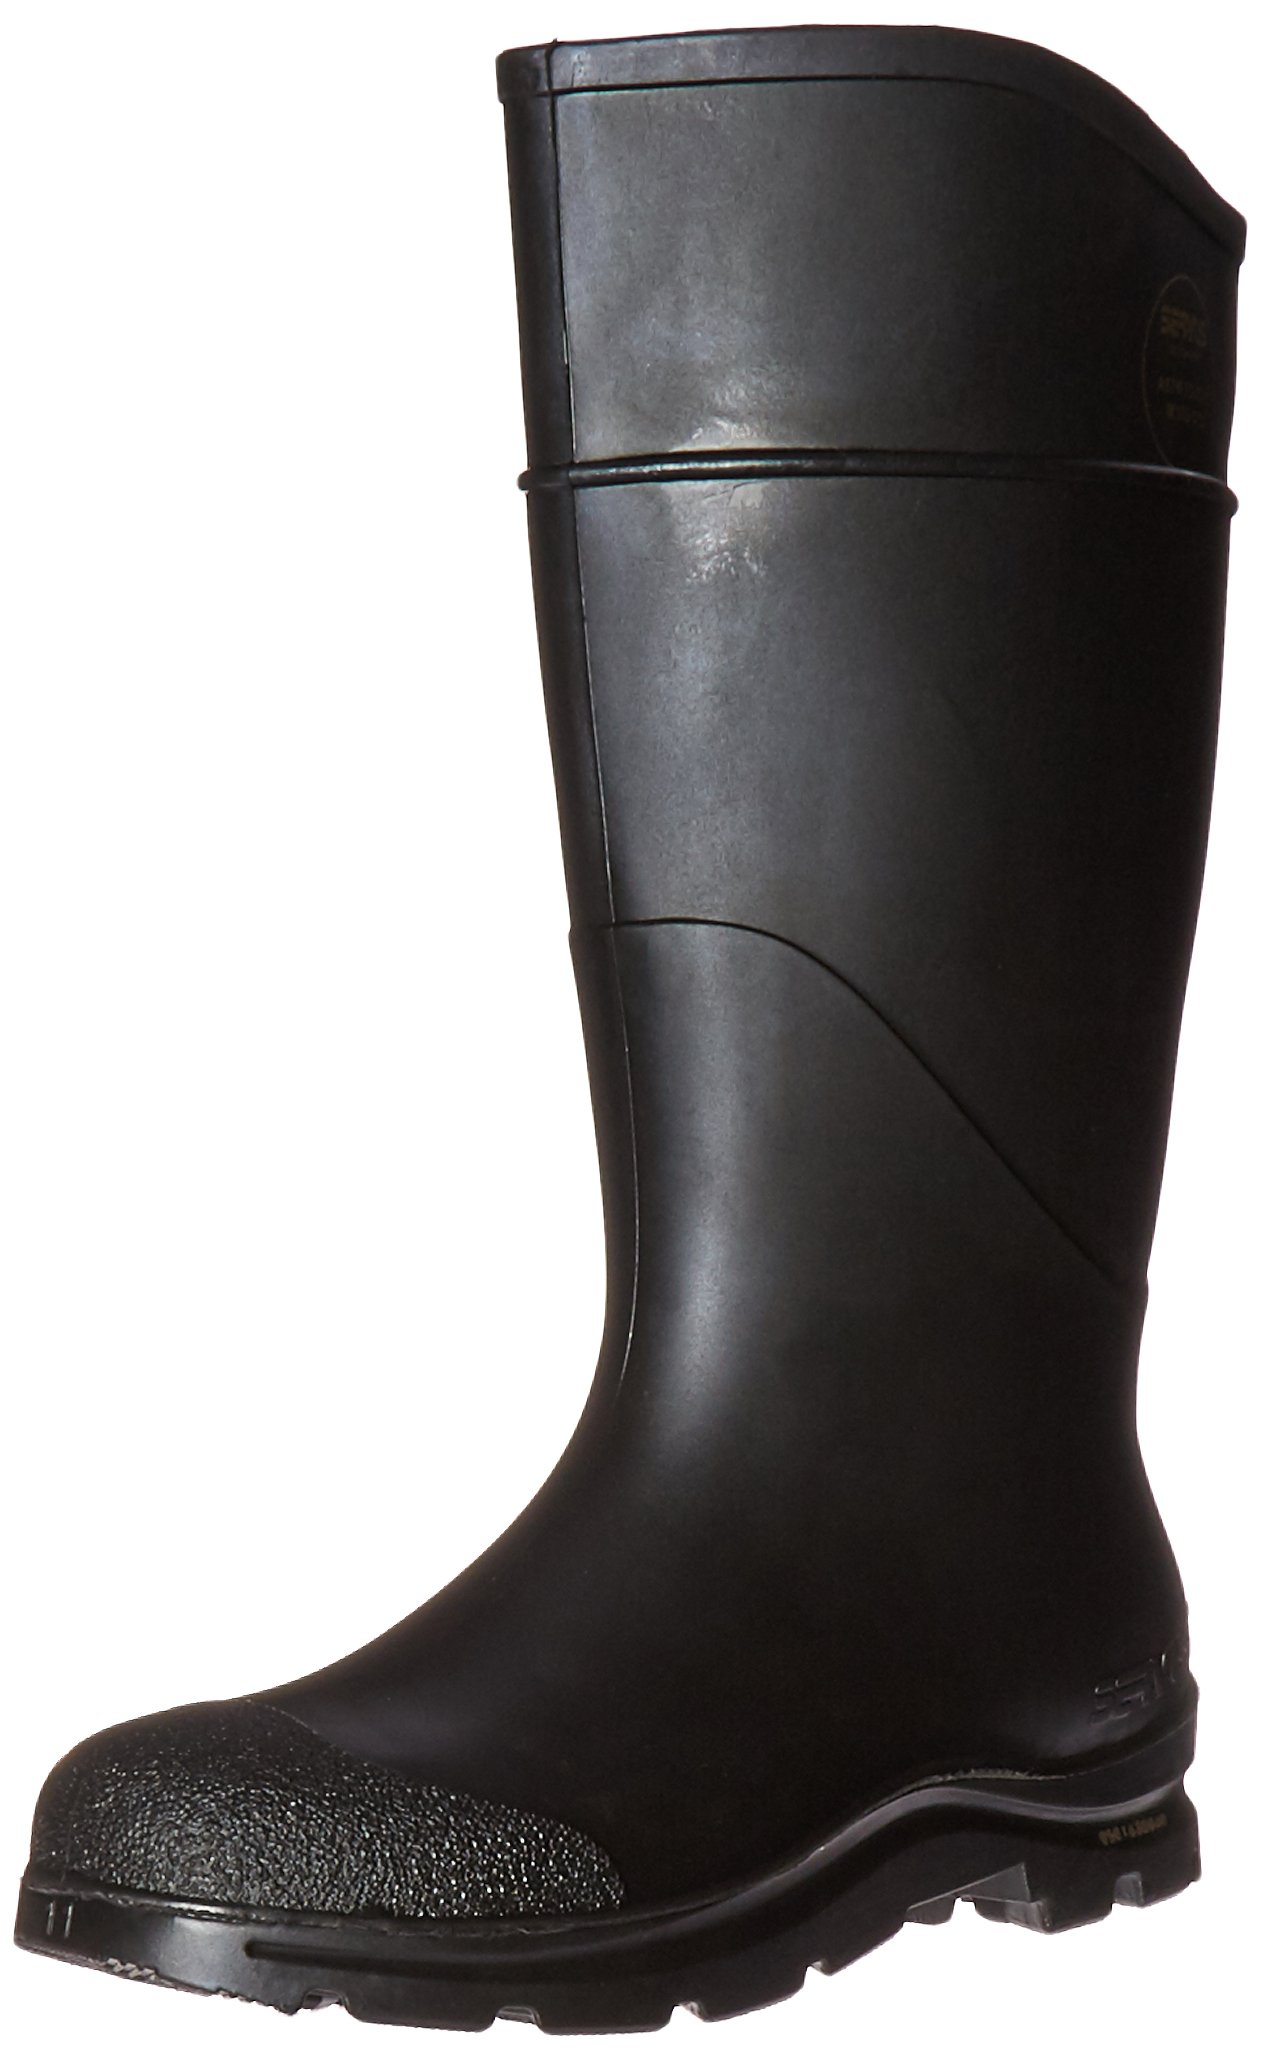 Radnor 64055865 16'' PVC Economy Boots, Lugged Outsole Steel Toe, Size 11, Black